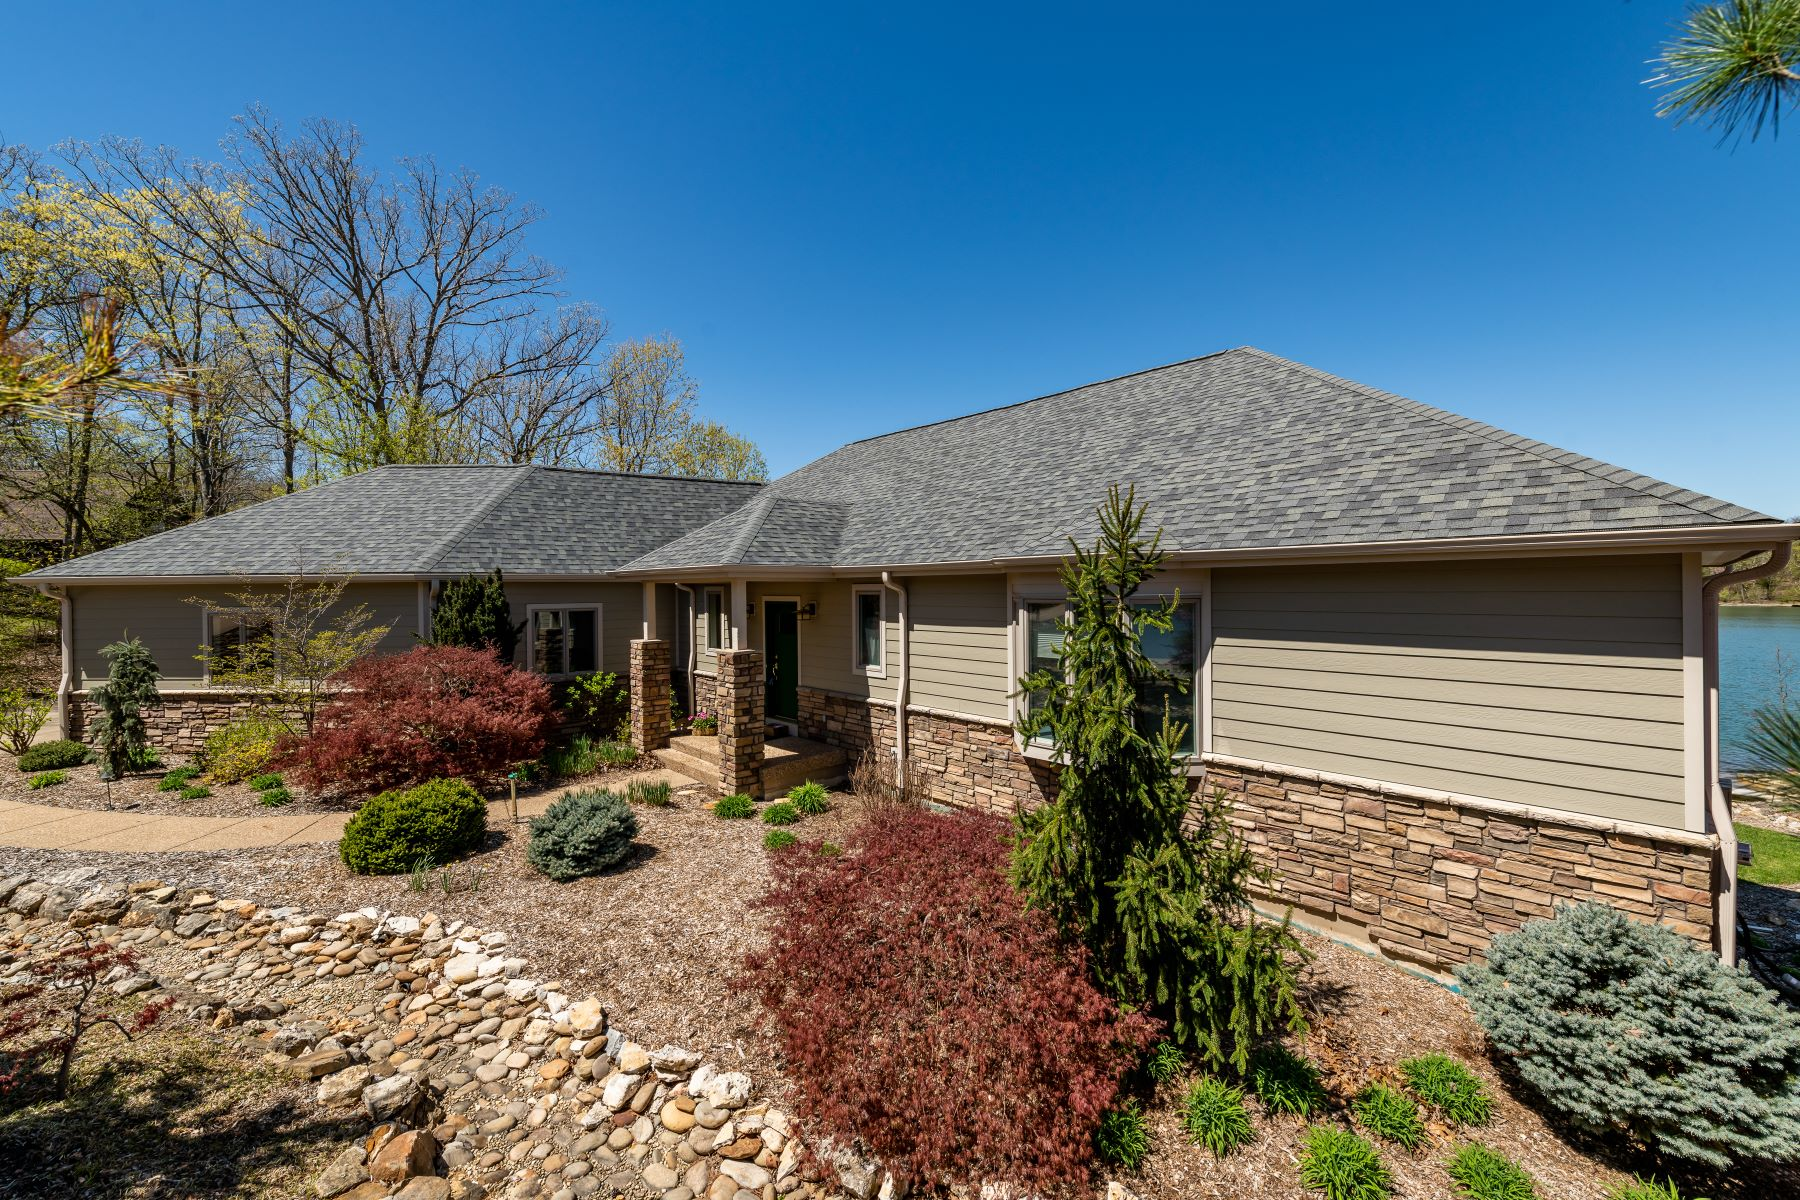 Single Family Home for Sale at Alpine Spur Dr 2342 Alpine Spur Dr Innsbrook, Missouri 63390 United States